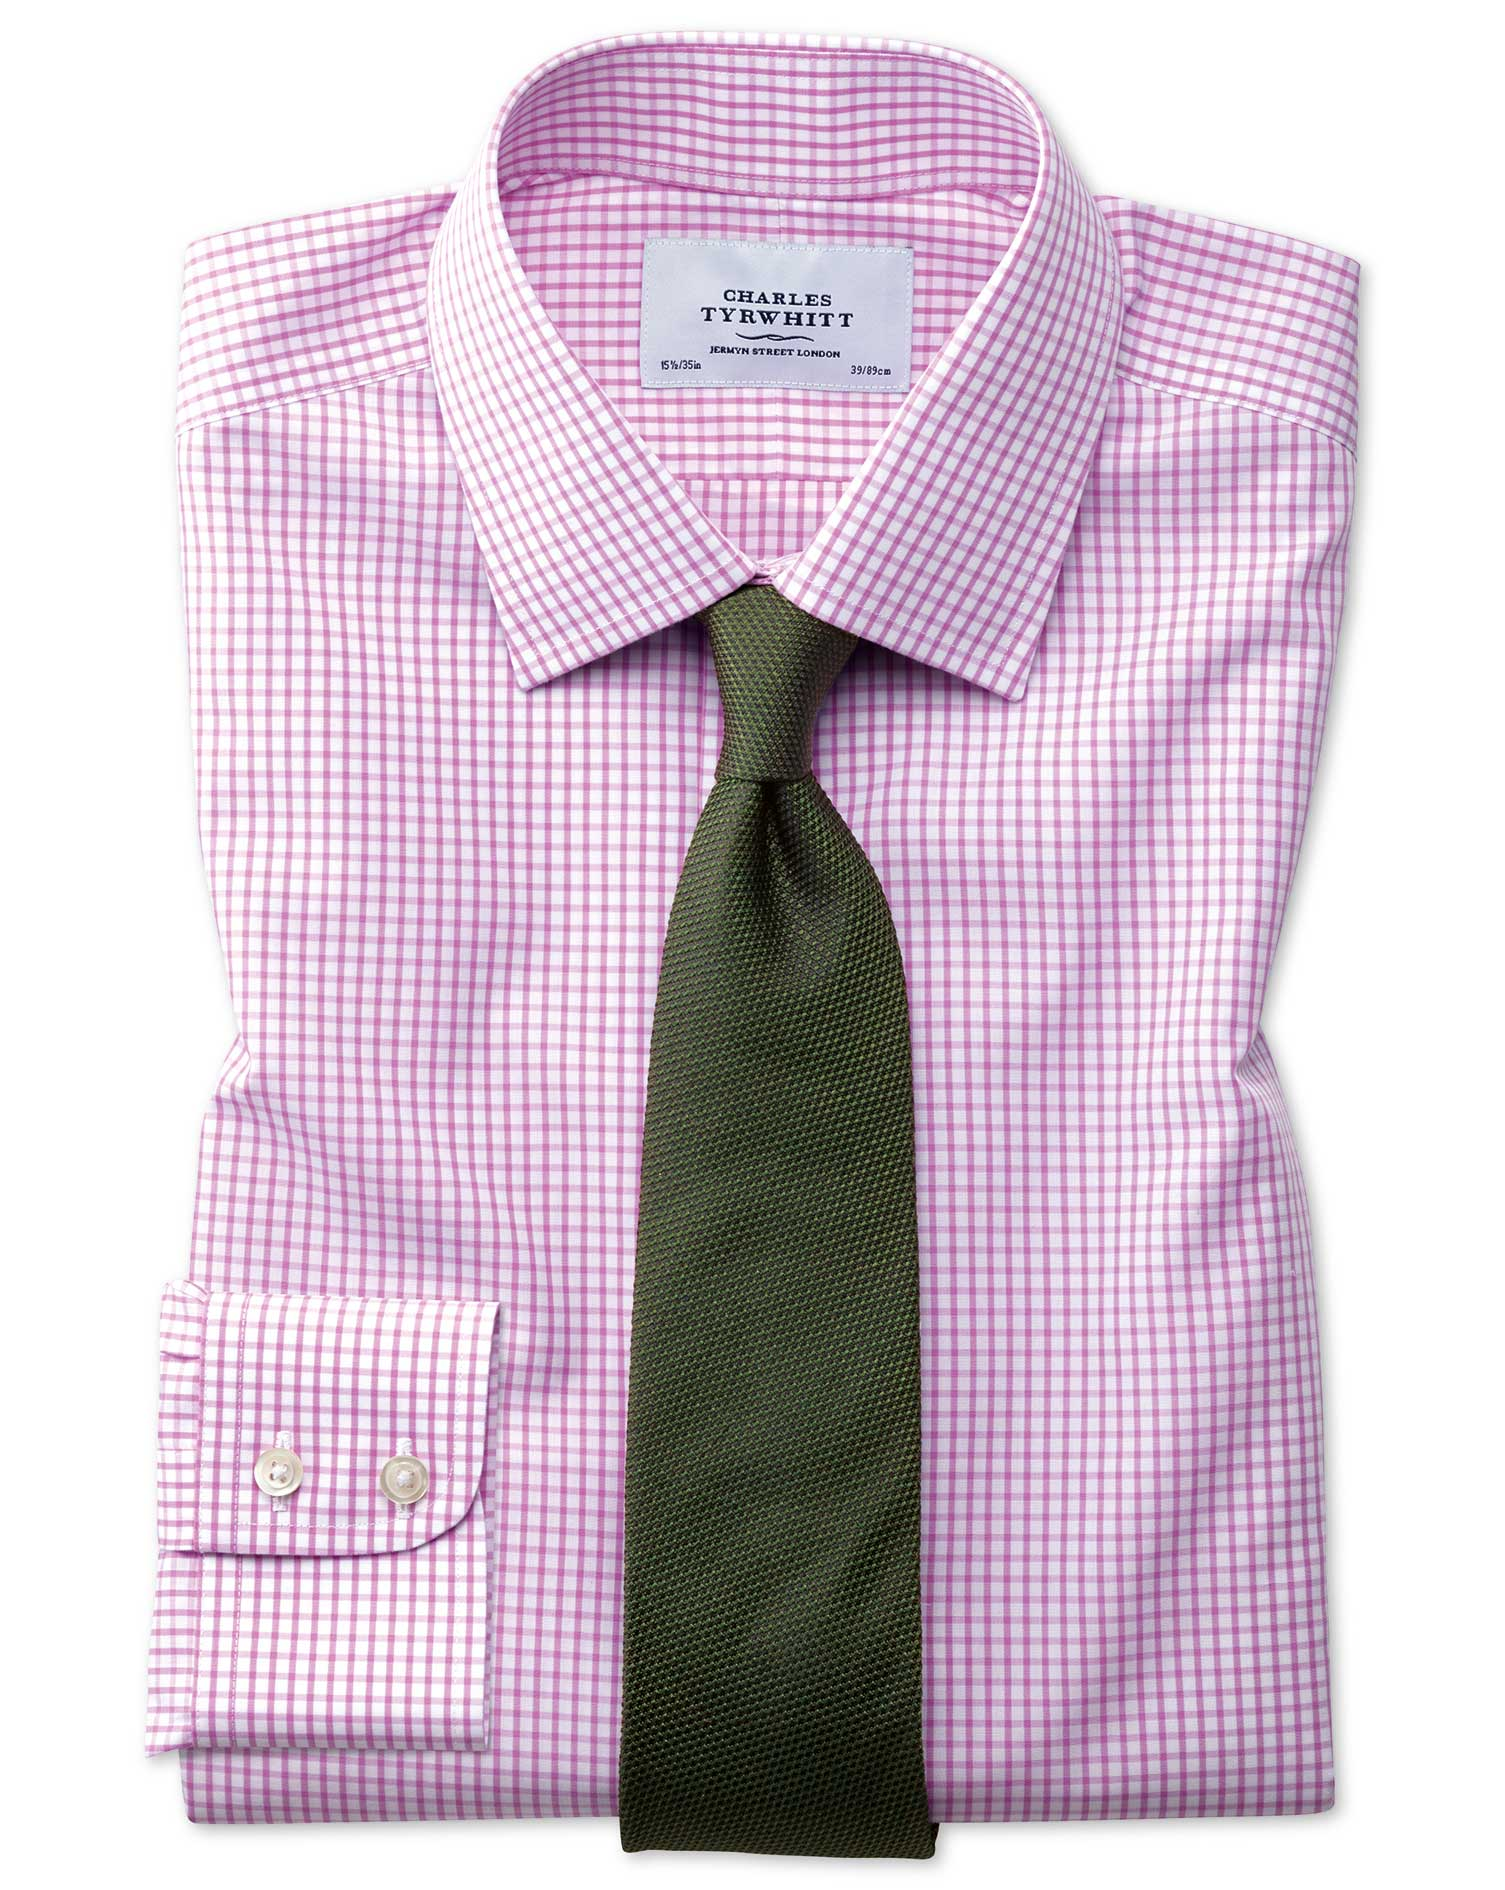 Classic Fit Non-Iron Grid Check Pink Cotton Formal Shirt Single Cuff Size 16/35 by Charles Tyrwhitt